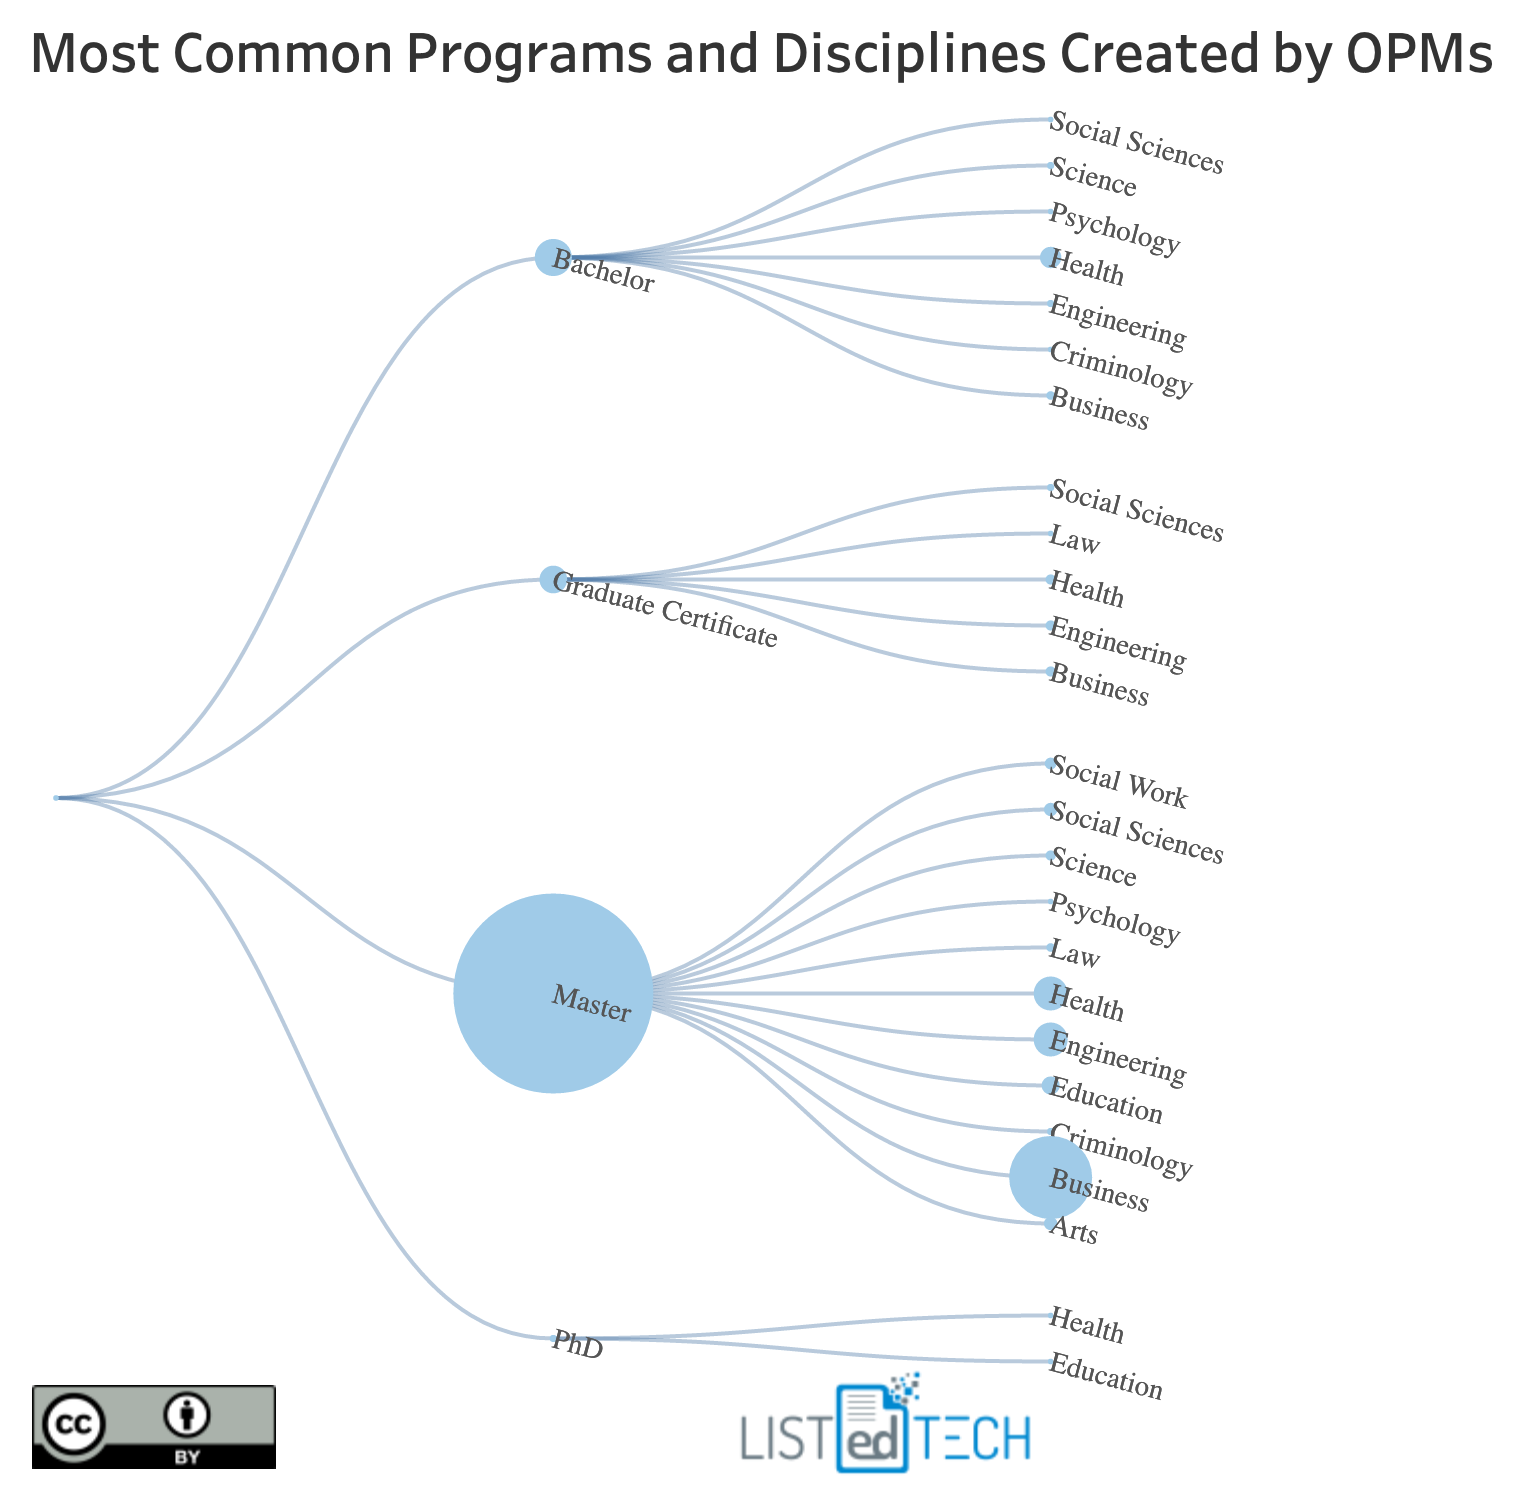 Most Common Programs - LisTedTECH